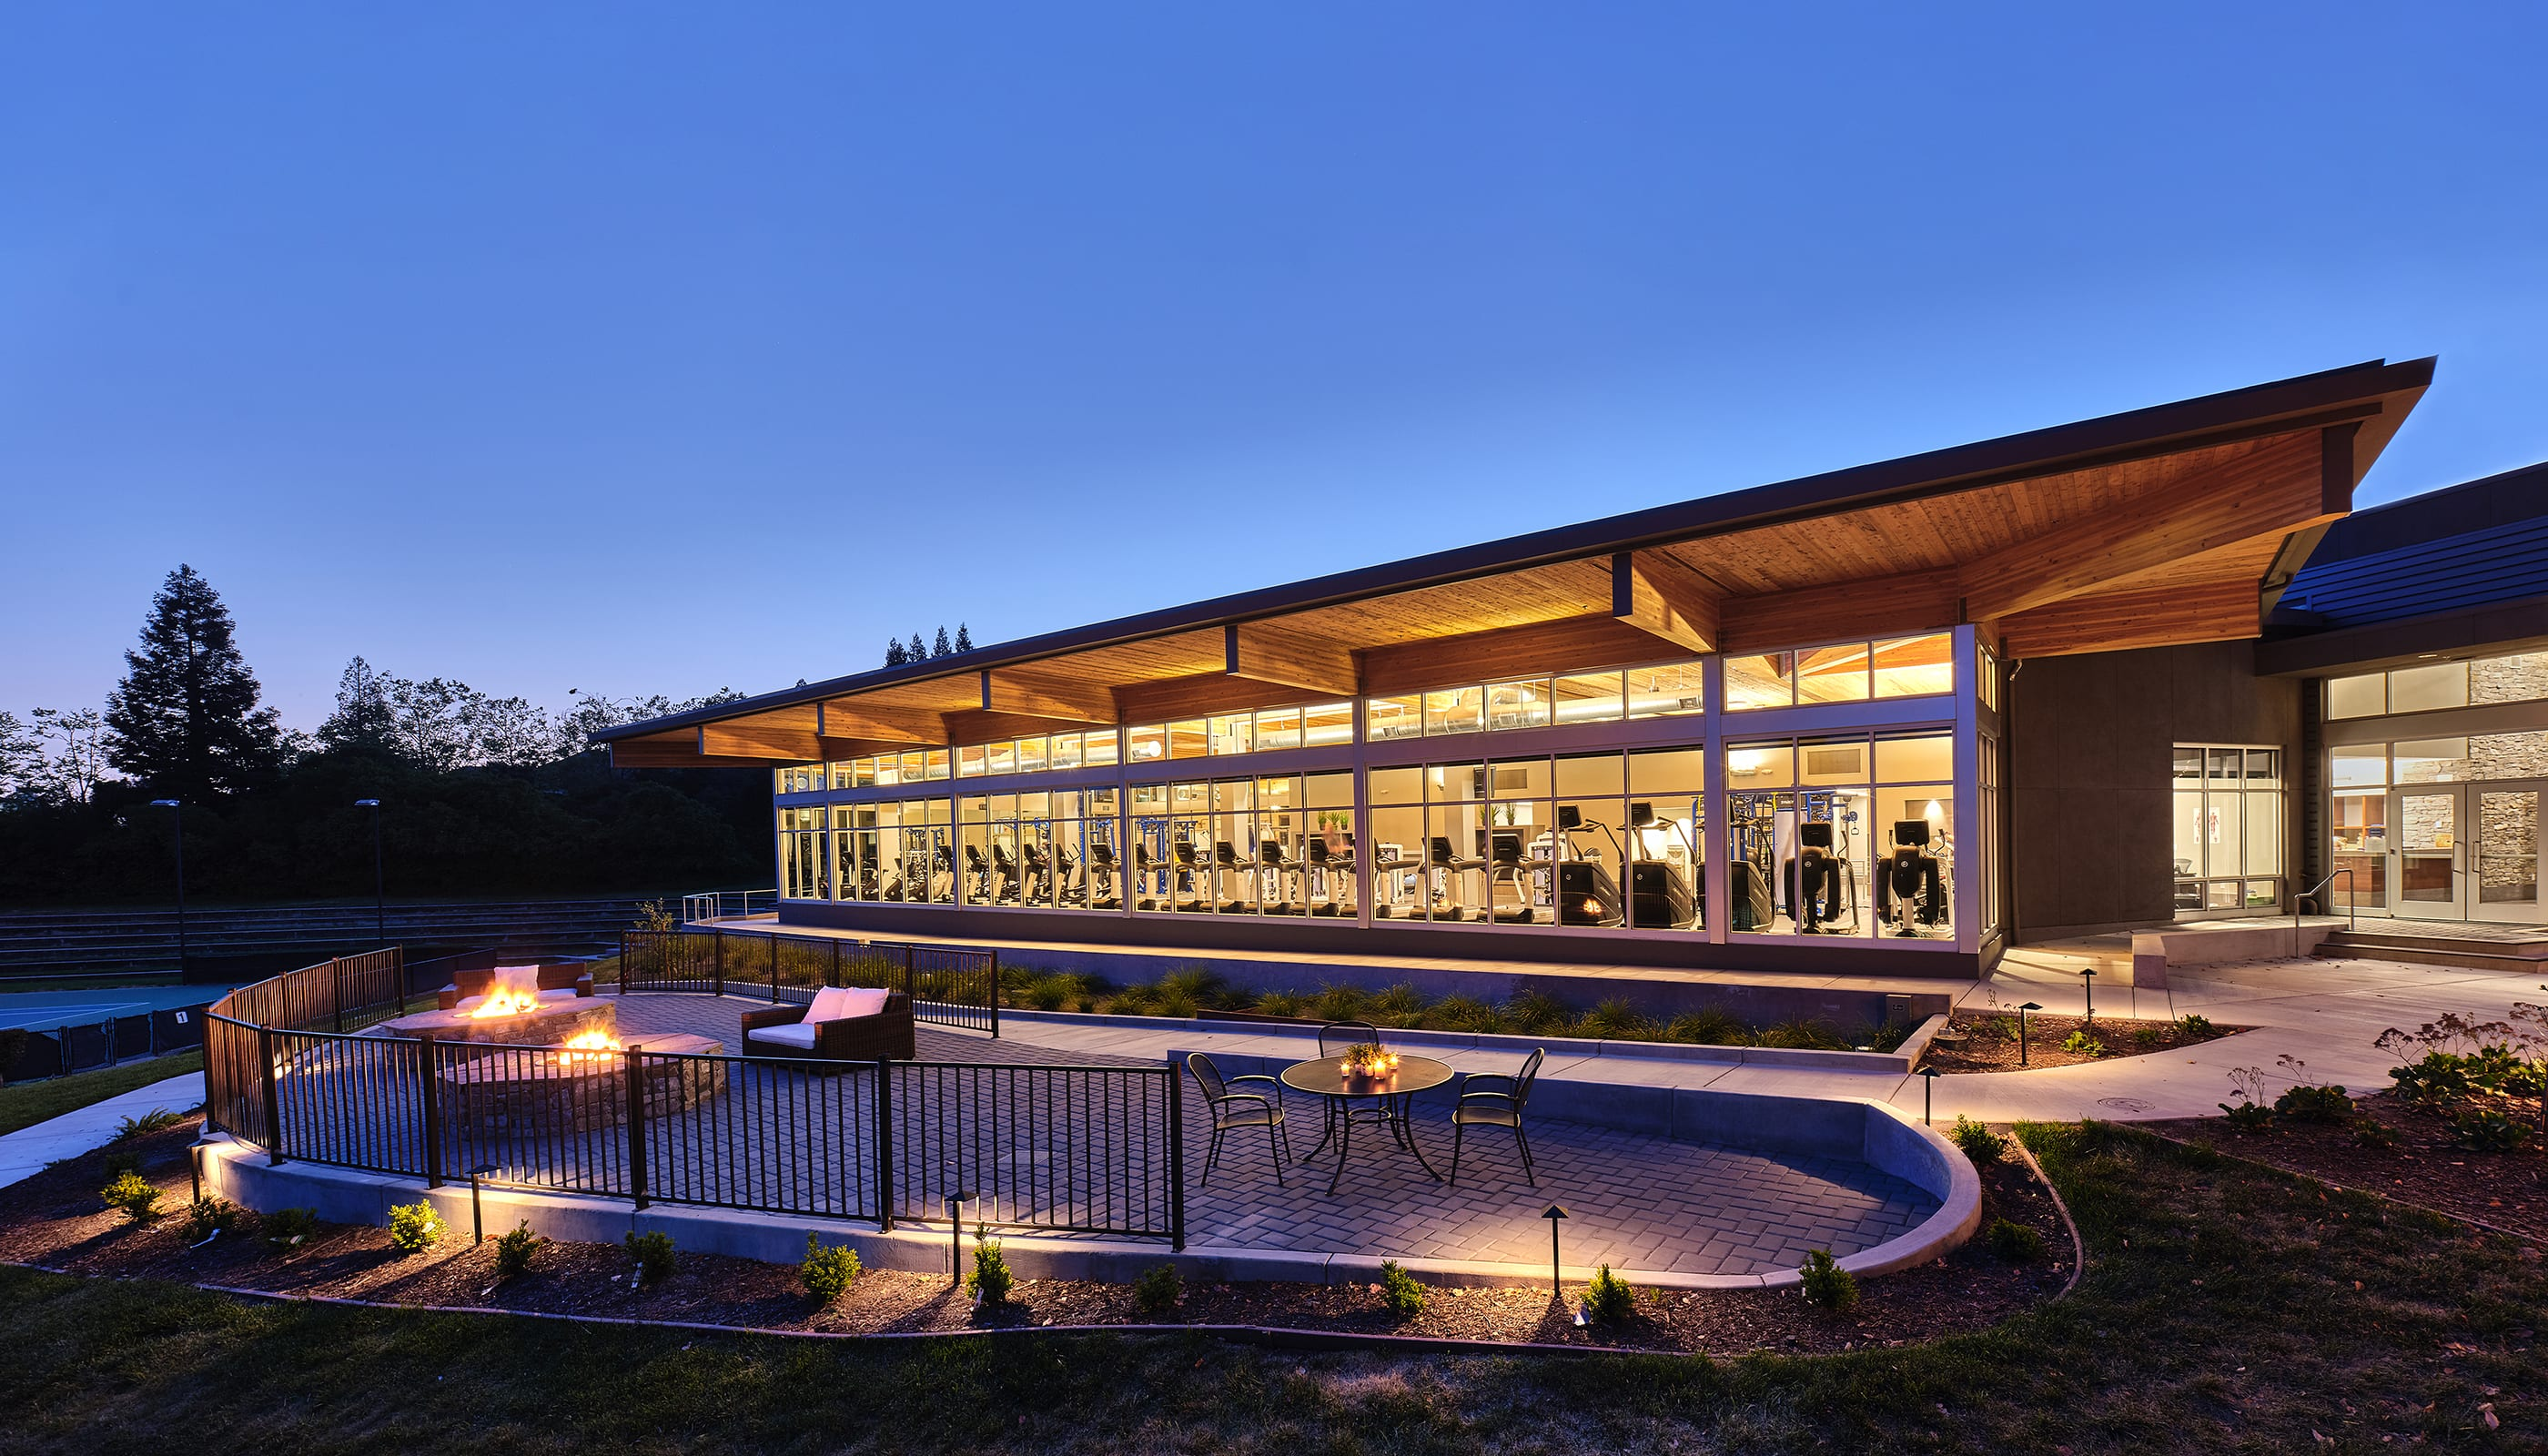 Blackhawk Fitness Wellness - Modern Architecture